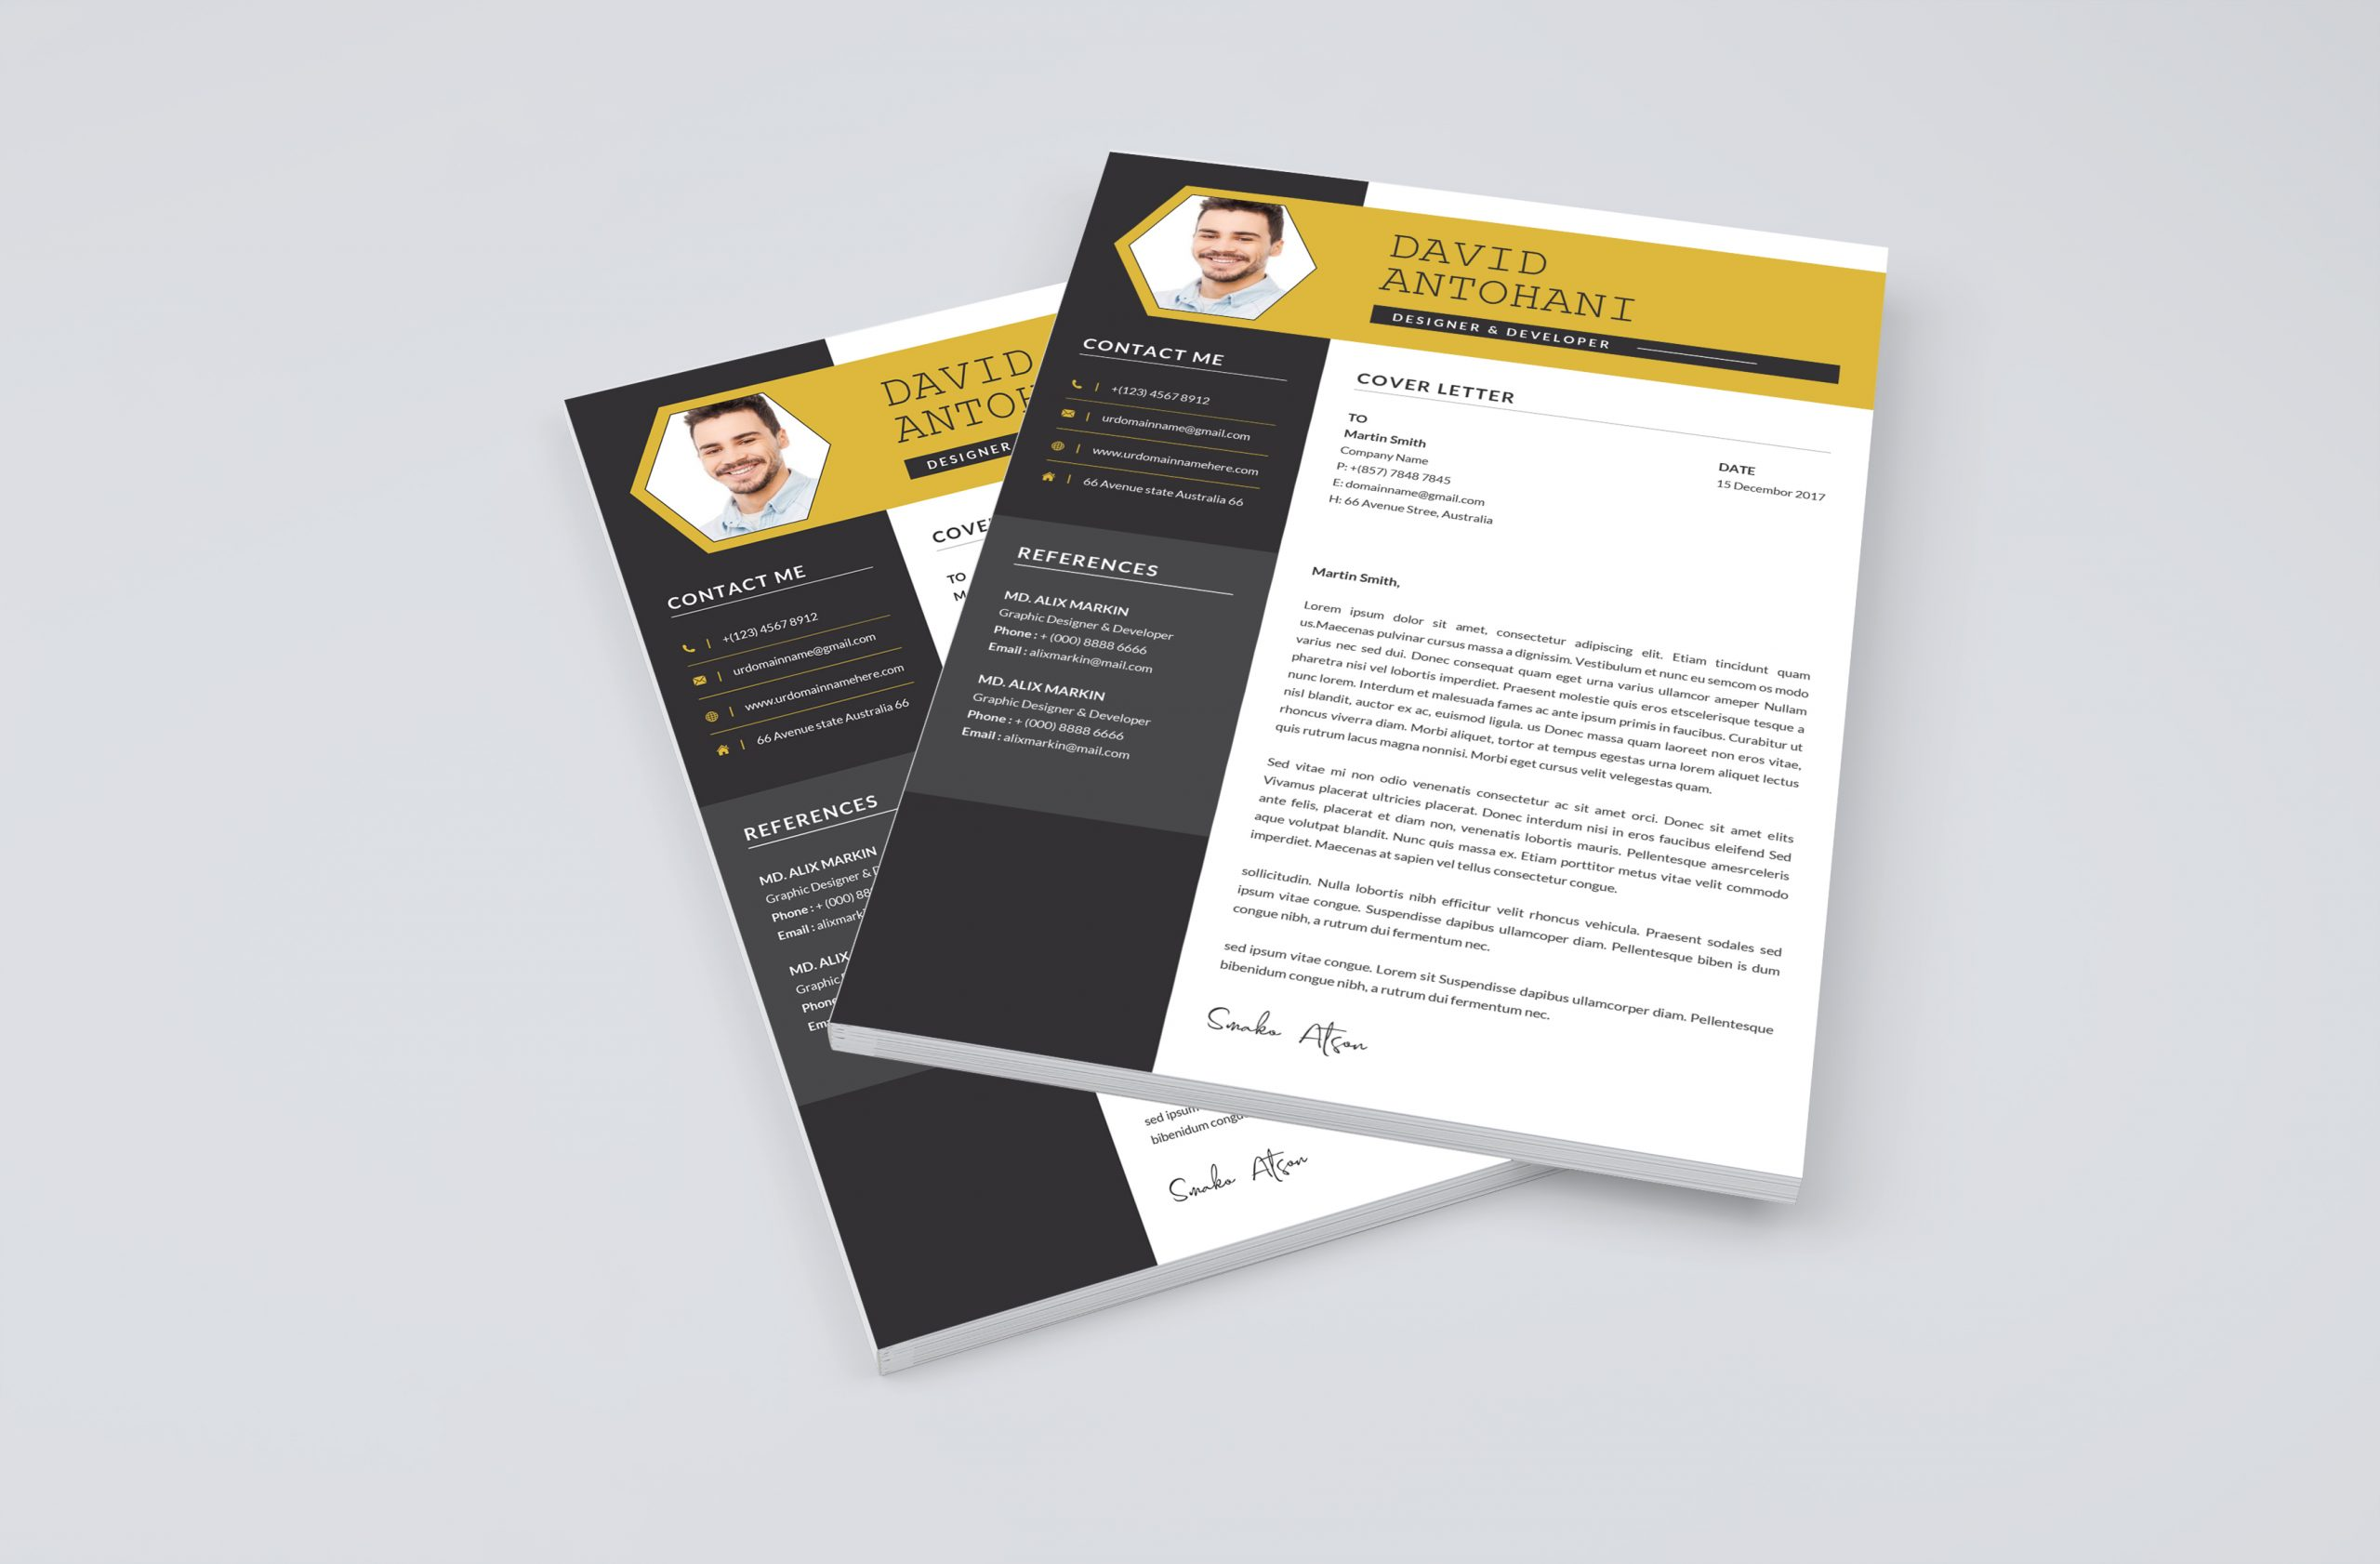 Creative Cover Letter Templates 2021